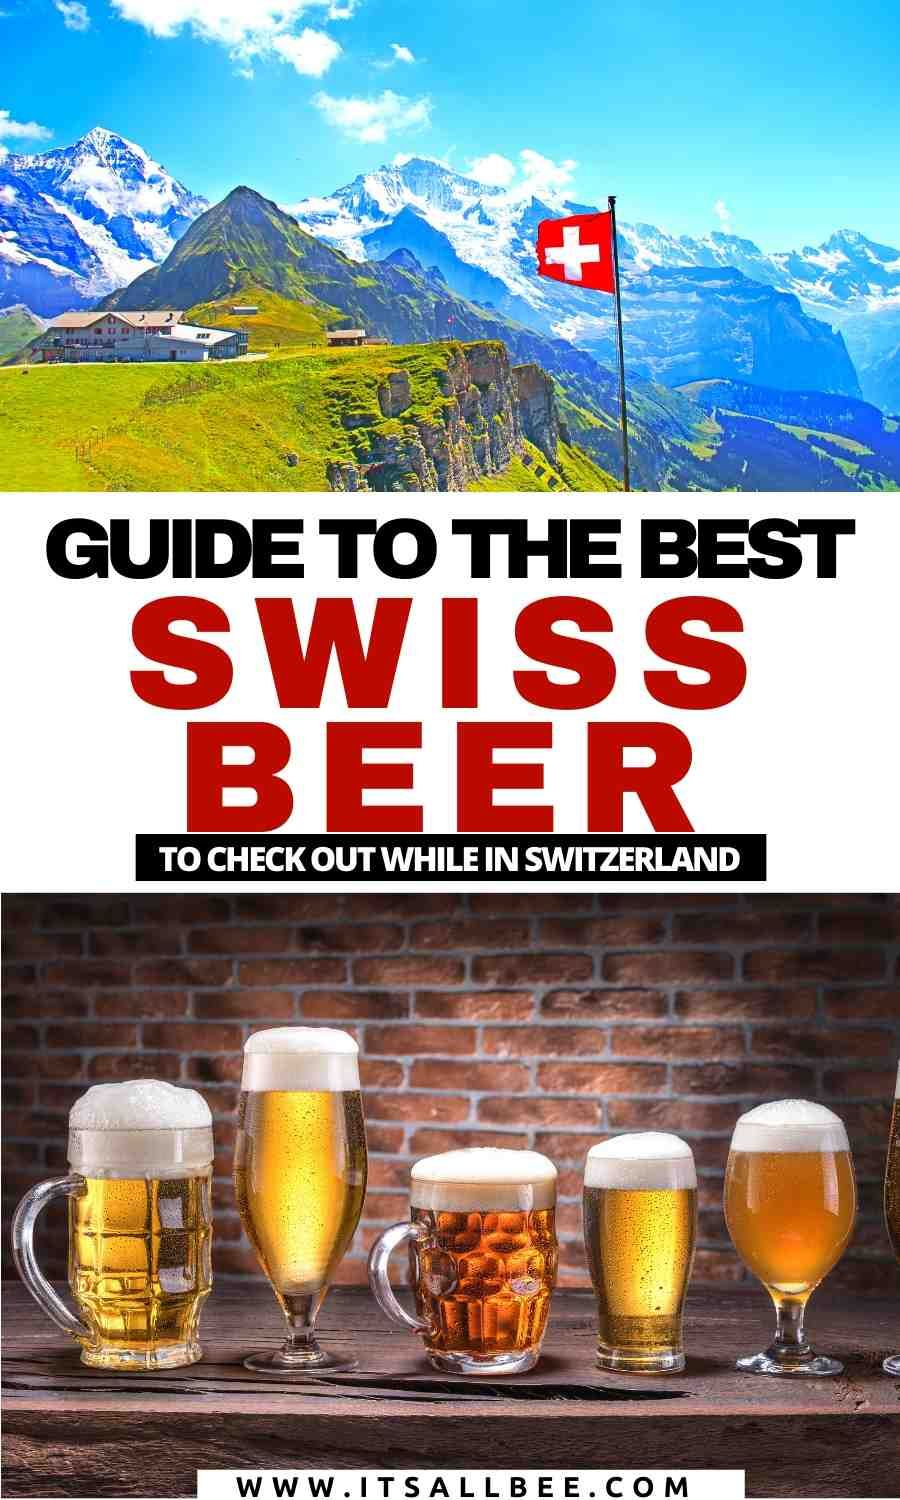 Guide To The Best Swiss Beers From Ale And Craft Beers To Exploring The Many Swiss Beer Brands In 2020 Europe Travel Places Europe Trip Itinerary Europe Travel Guide